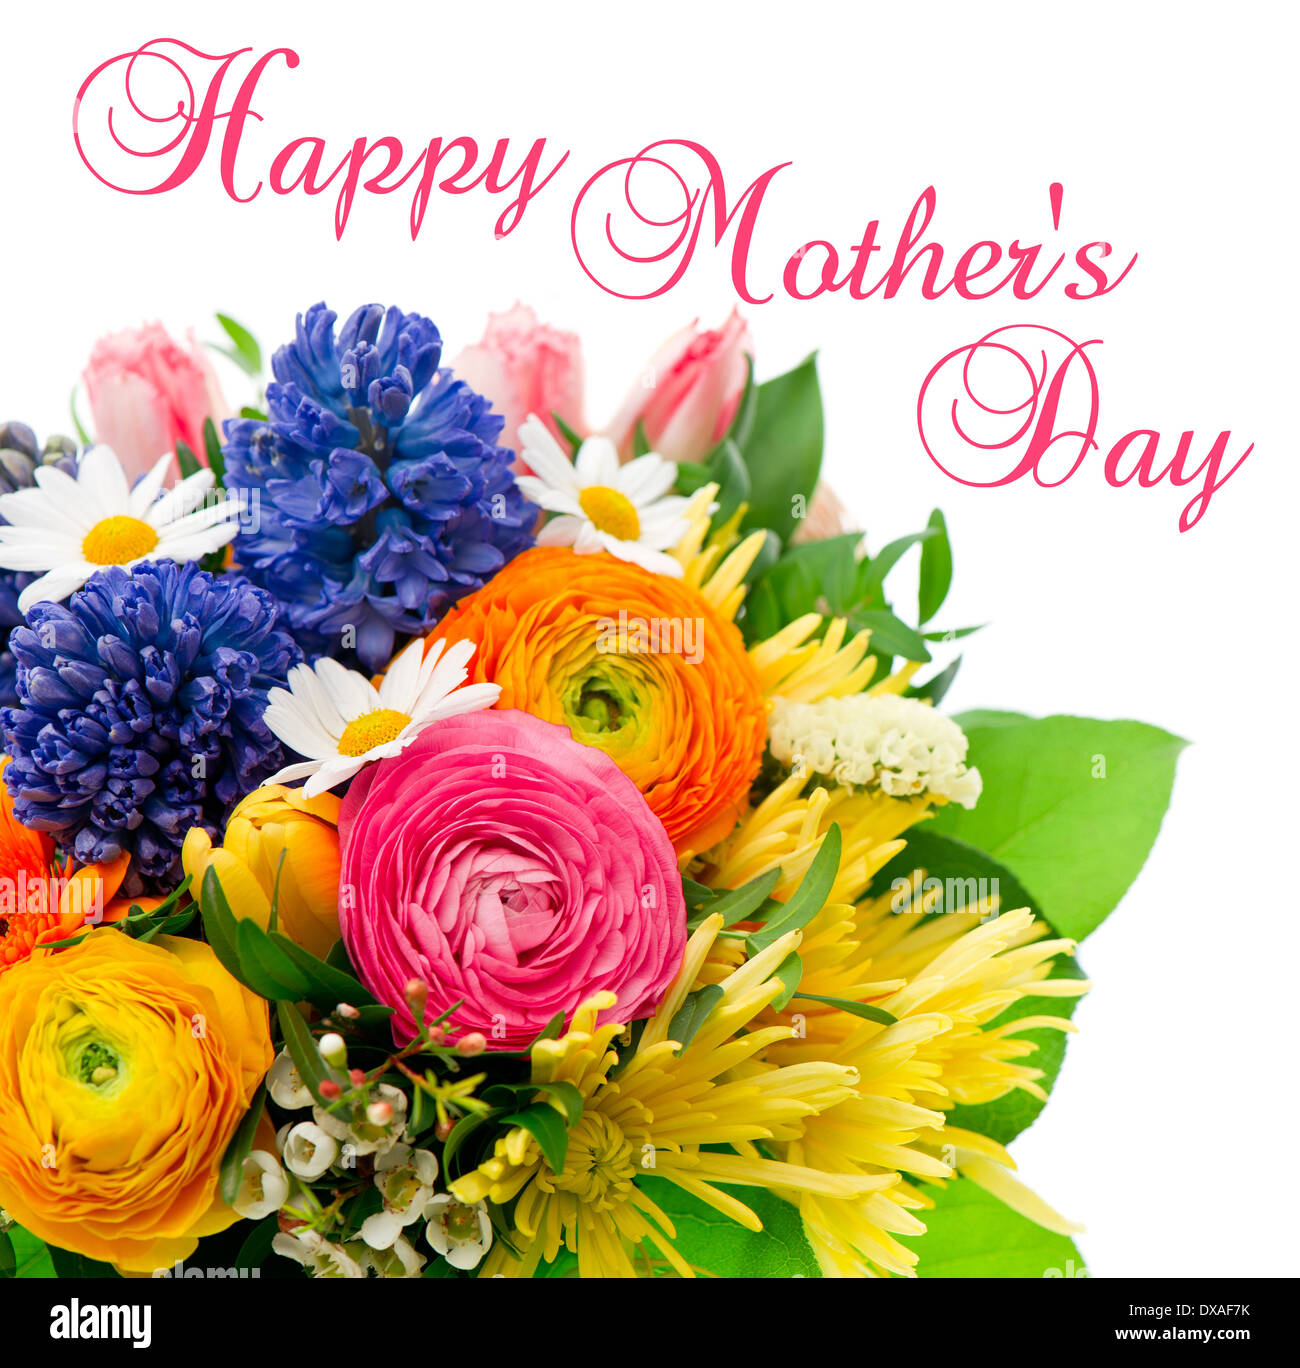 Happy Mothers Day Card Concept Beautiful Bouquet Of Colorful Spring Stock Photo Alamy